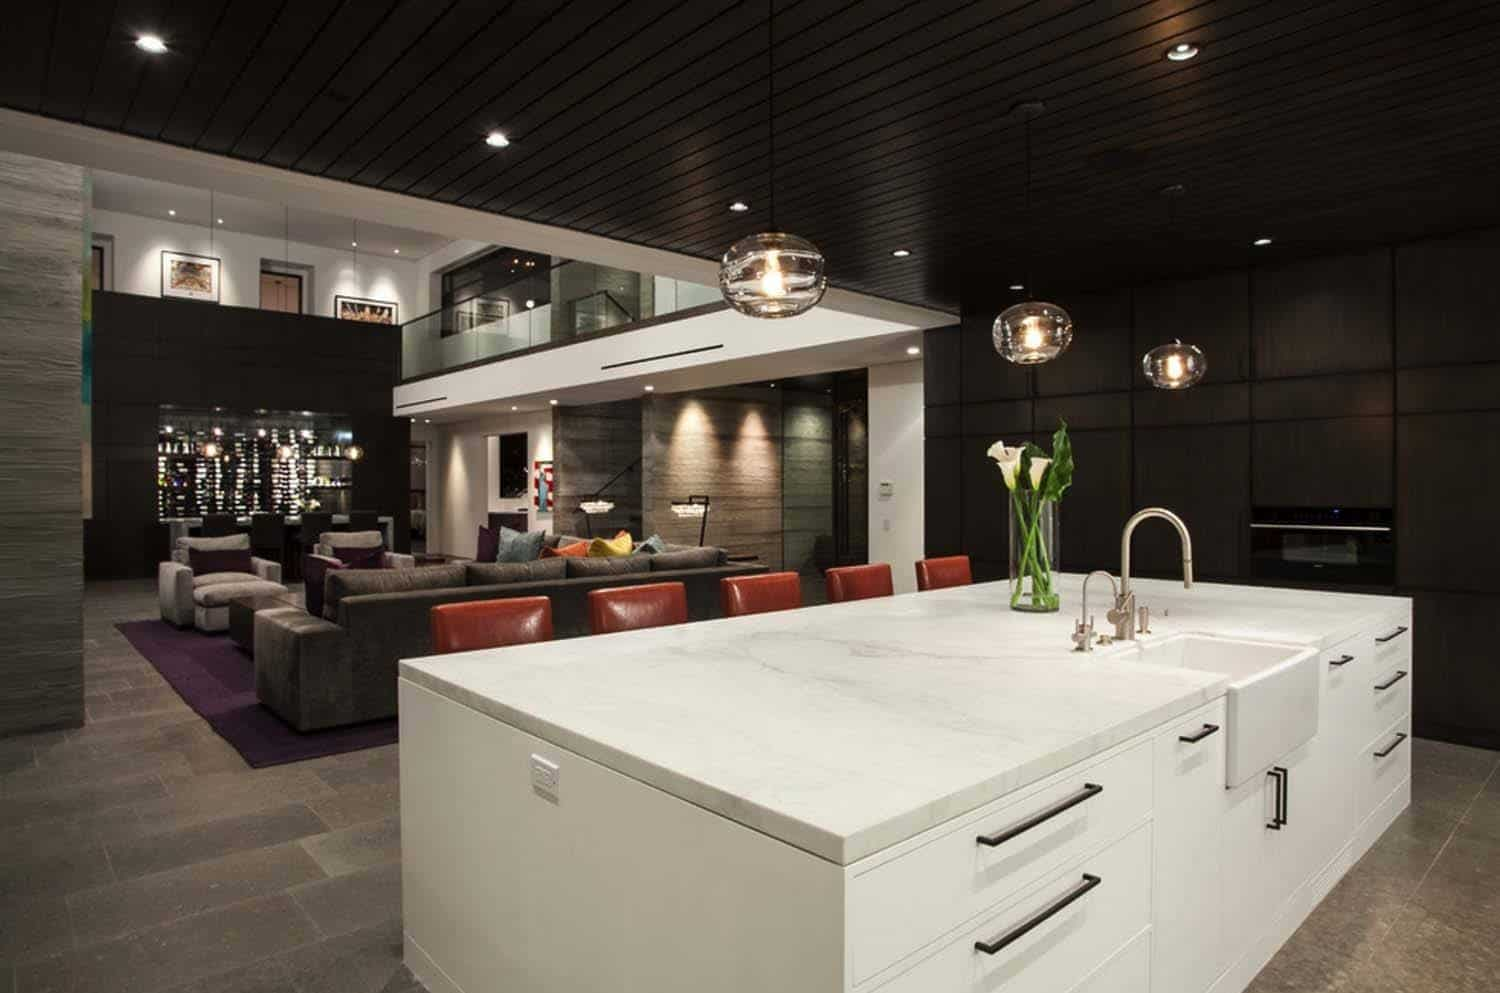 Contemporary Home-Laidlaw Schultz Architects-09-1 Kindesign